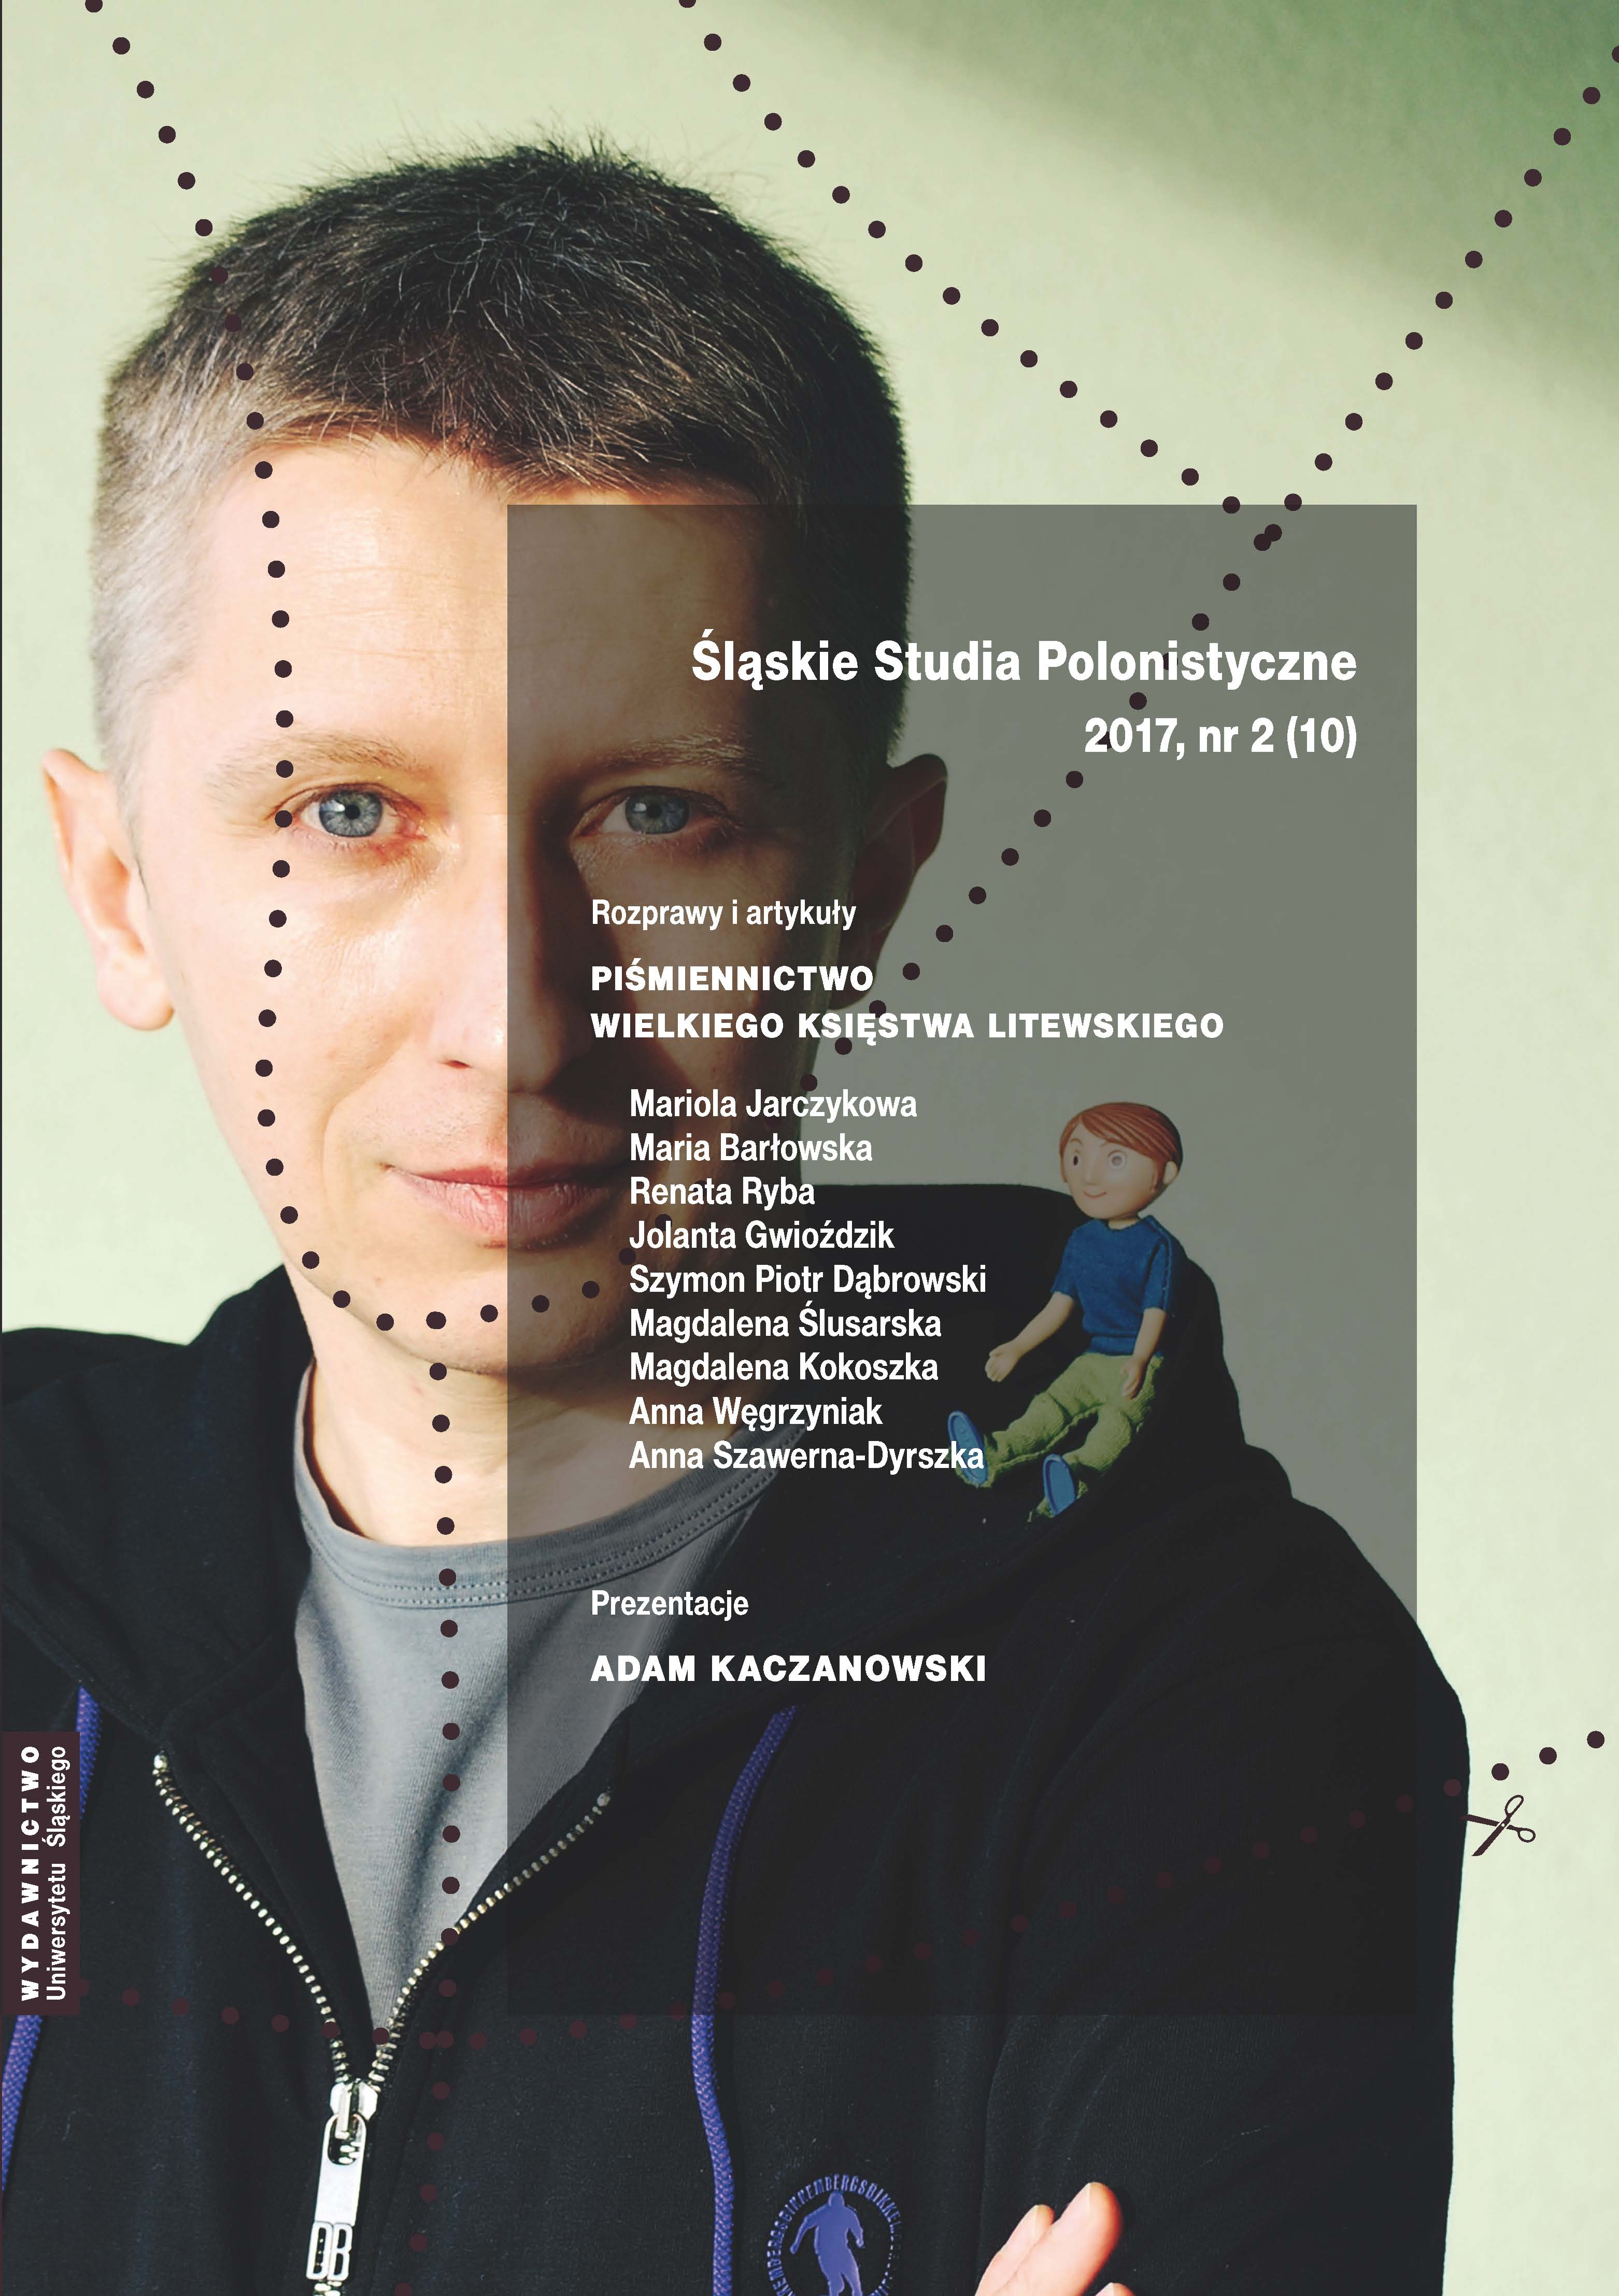 A Laudatory Speech on the Occasion of Tabling a Motion by the Council of the Philological Faculty, Univeristy of Silesia in Katowice for the Renewal of the Doctor of Philosophy Degree of Professor Jan Malicki Cover Image